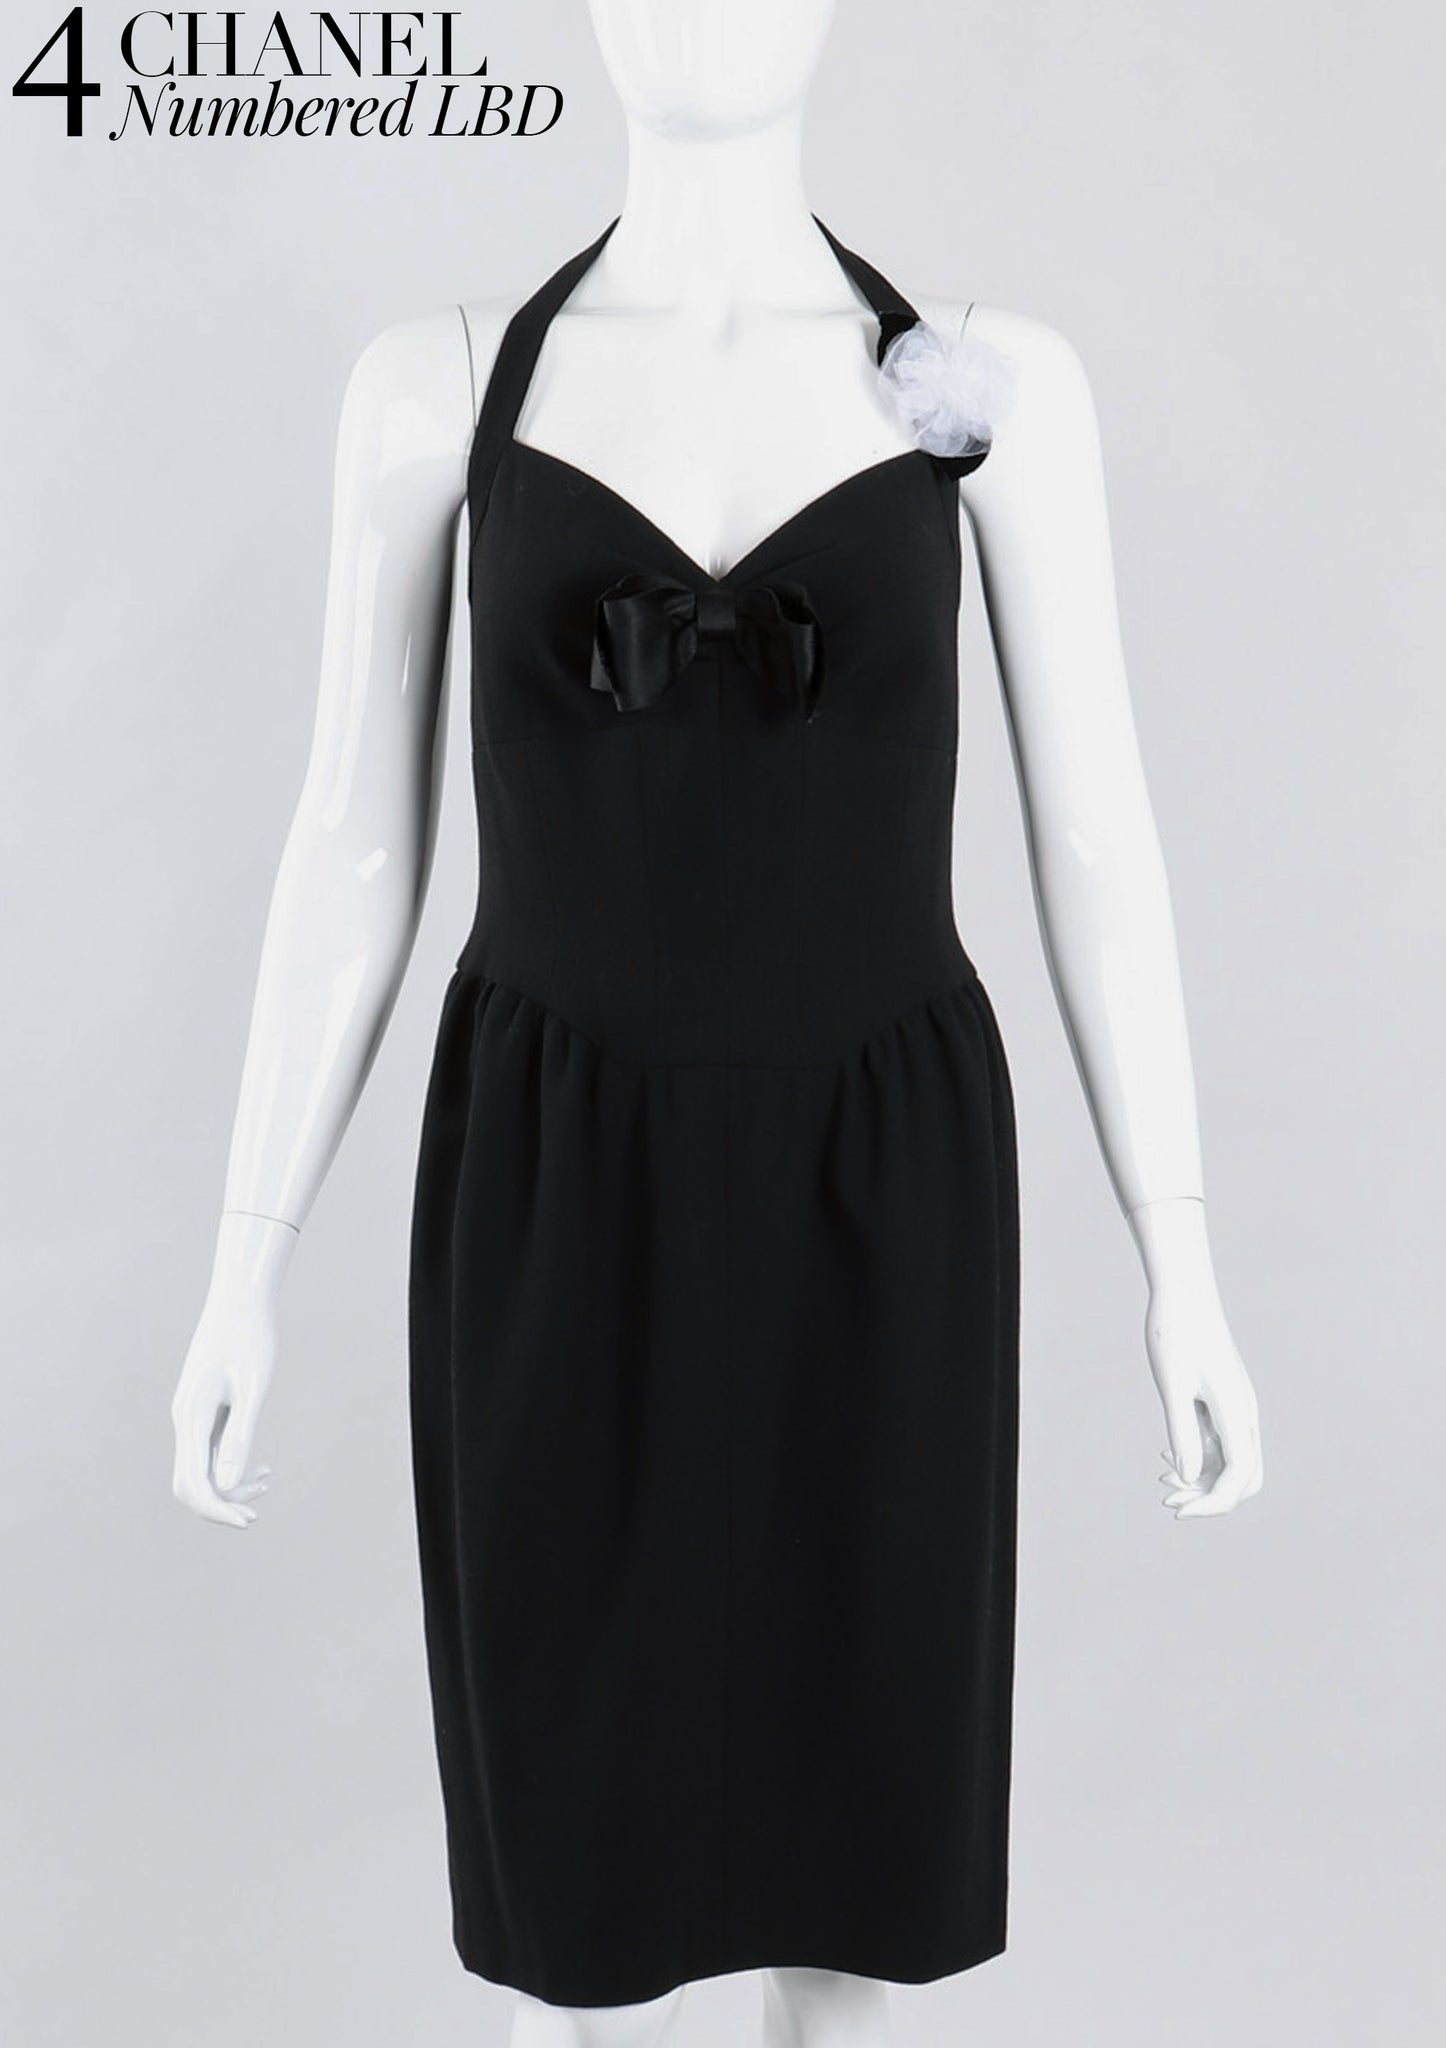 RECESS Los Angeles Vintage Dress Code Statement Piece Major Player Chanel Numbered Little Black Cocktail Dress